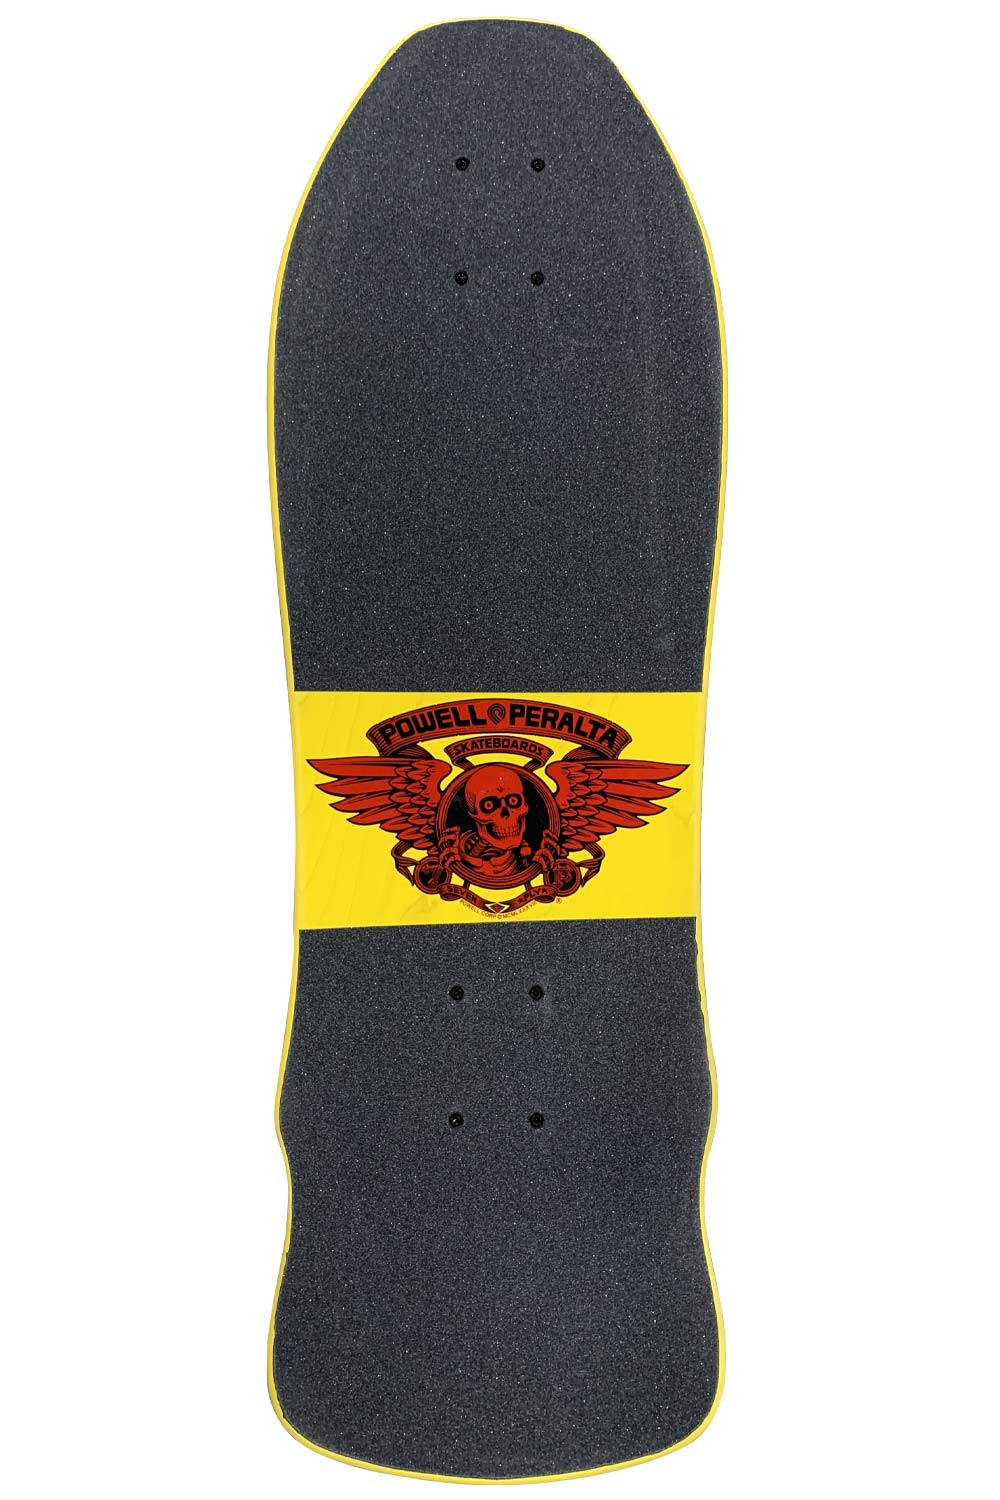 Powell Peralta Geegah Ripper Complete Cruiser (Yellow) - 9.75""